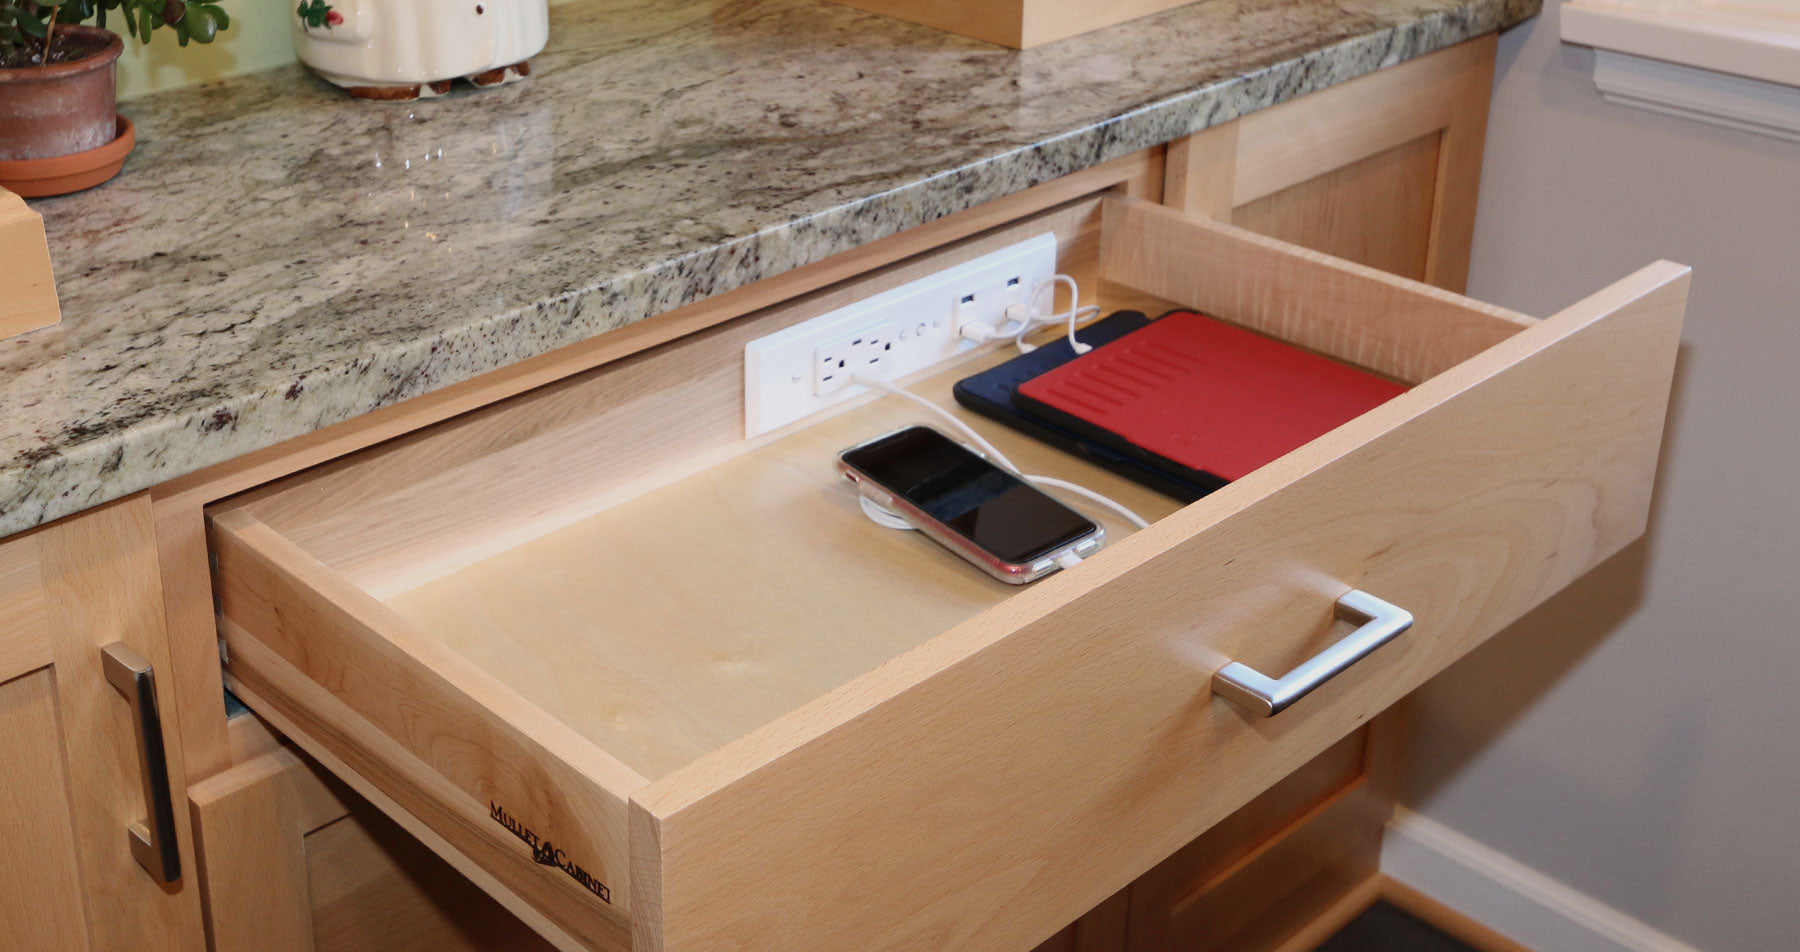 Why Choose Docking Drawer Outlets?